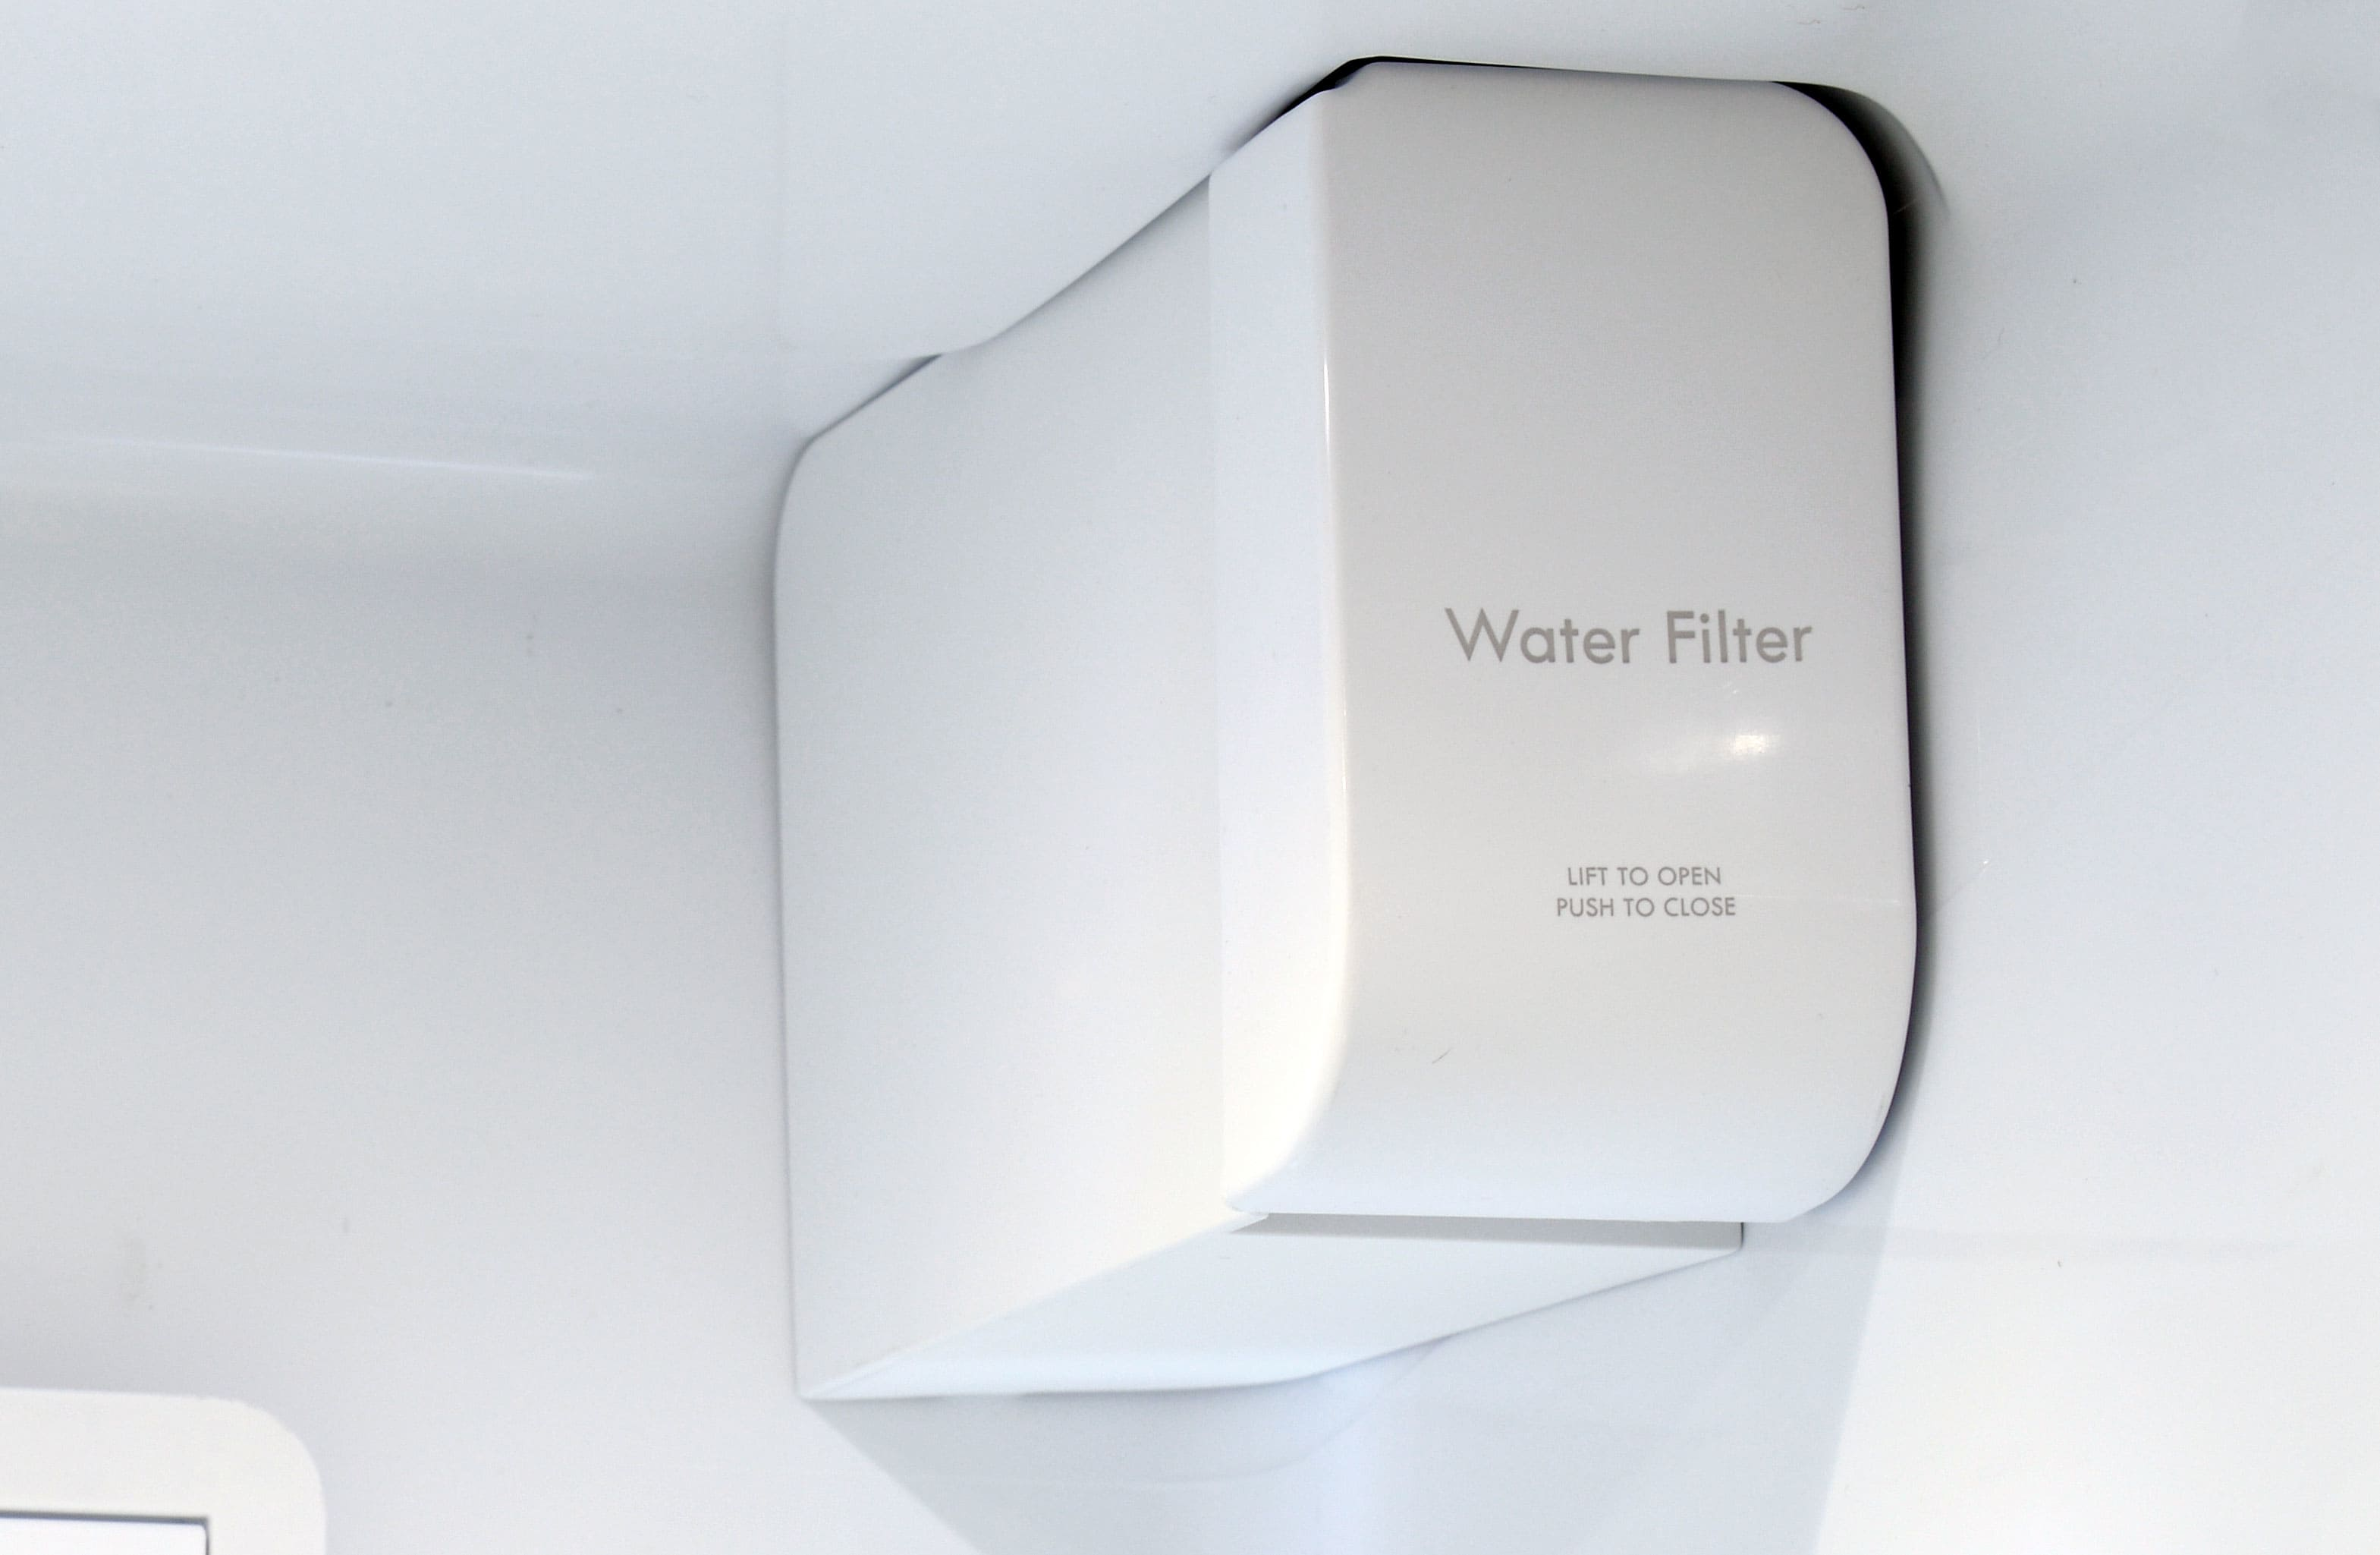 The Kenmore Elite 51773's water filter is unobtrusive and fairly easy to change.